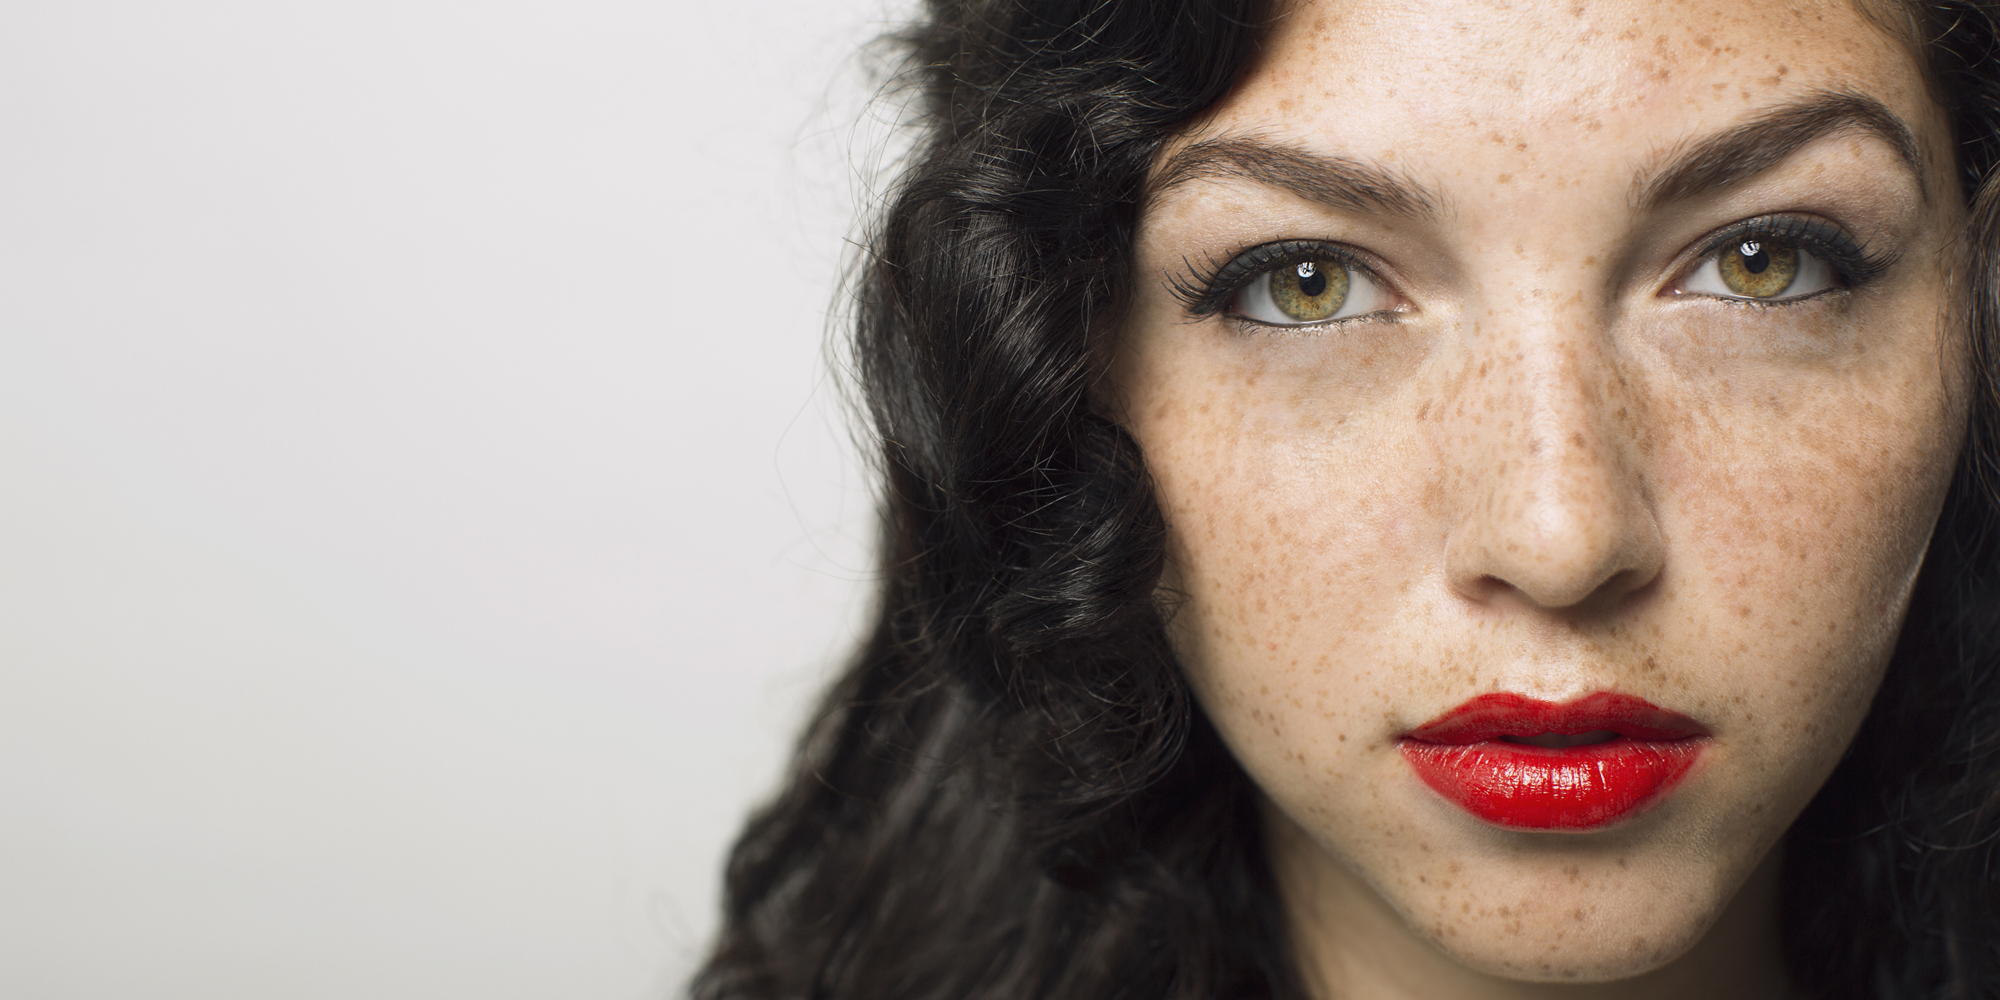 Match Com Ad Calls Freckles Imperfections Outcry Over